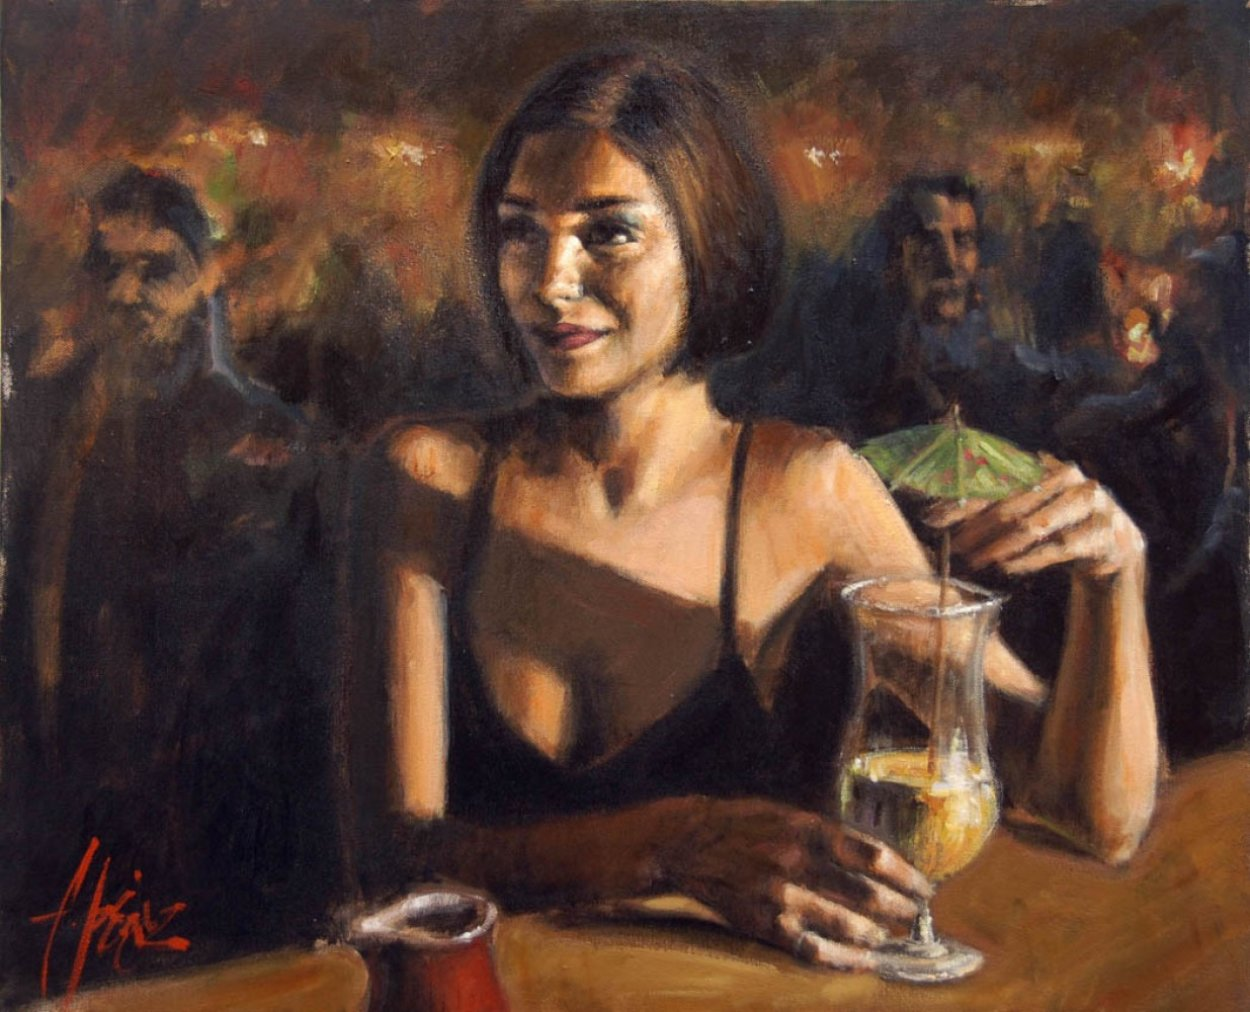 Cocktail in Maui AP 2005 Limited Edition Print by Fabian Perez